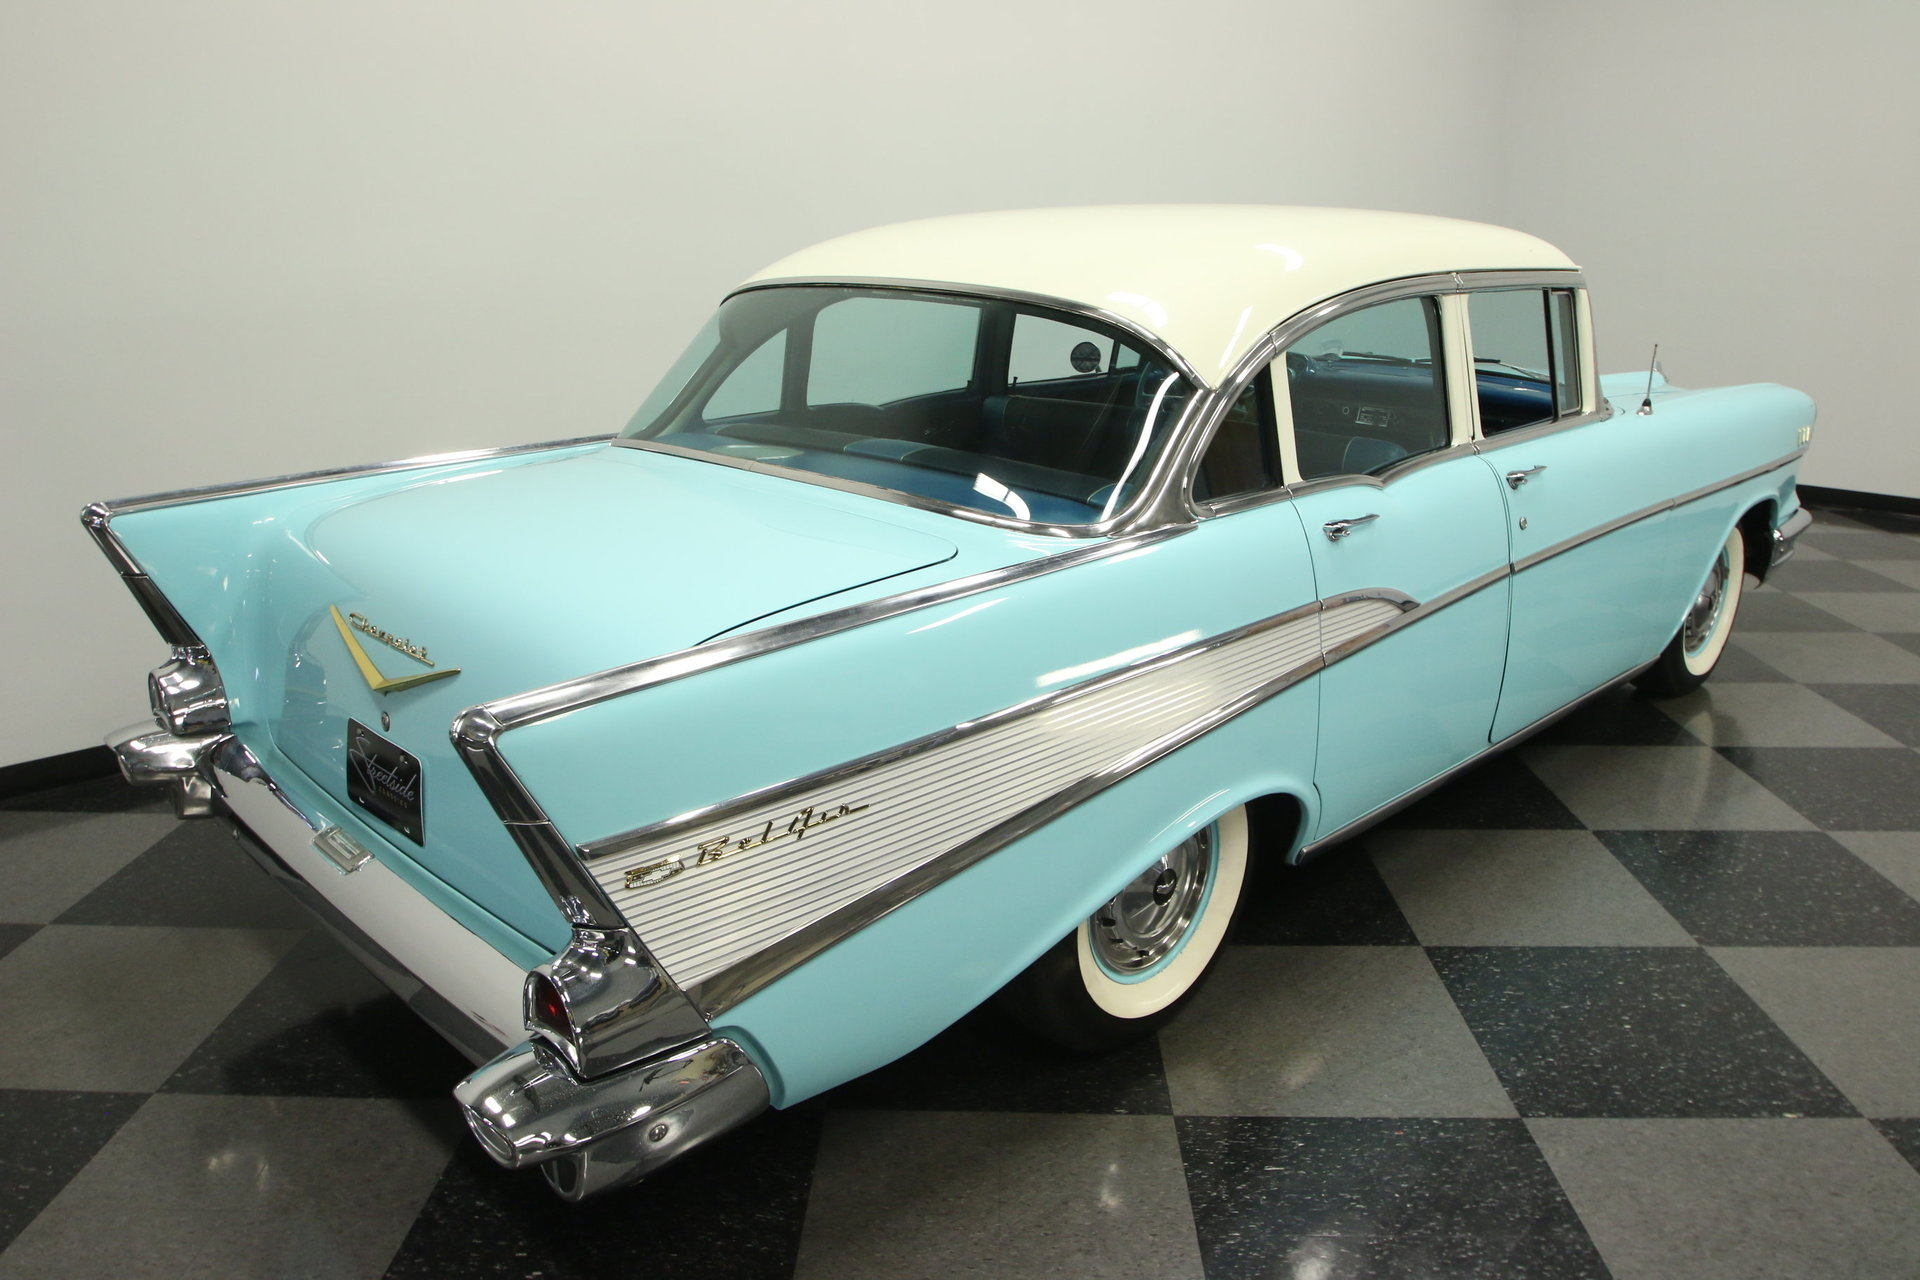 1957 Chevrolet Bel Air Streetside Classics The Nations Trusted Chevy 4 Door For Sale Spincar View Play Video 360